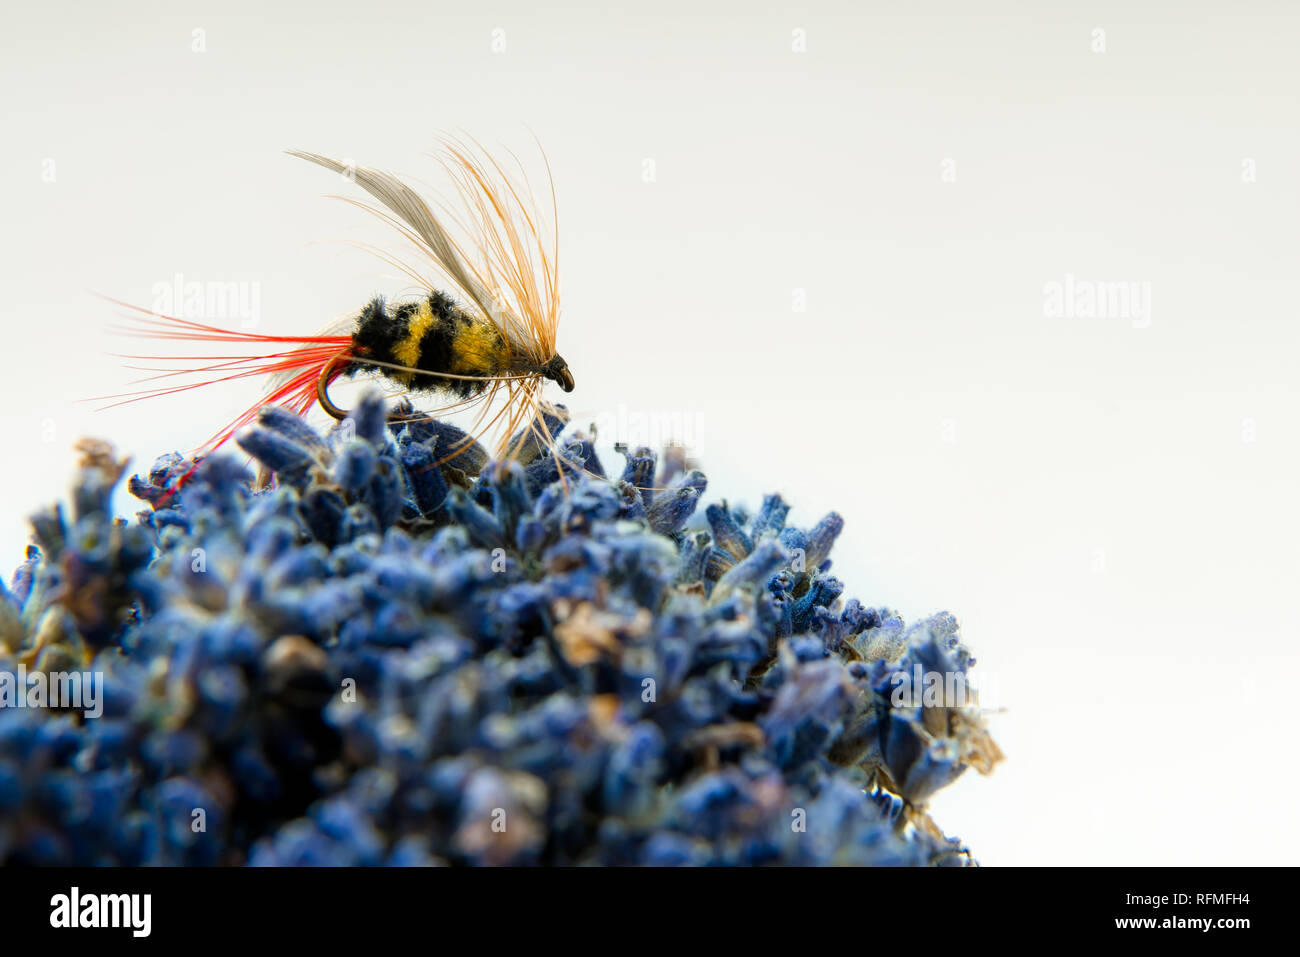 Fly fishing fly, bee imitation for trout or salmon on white background Stock Photo